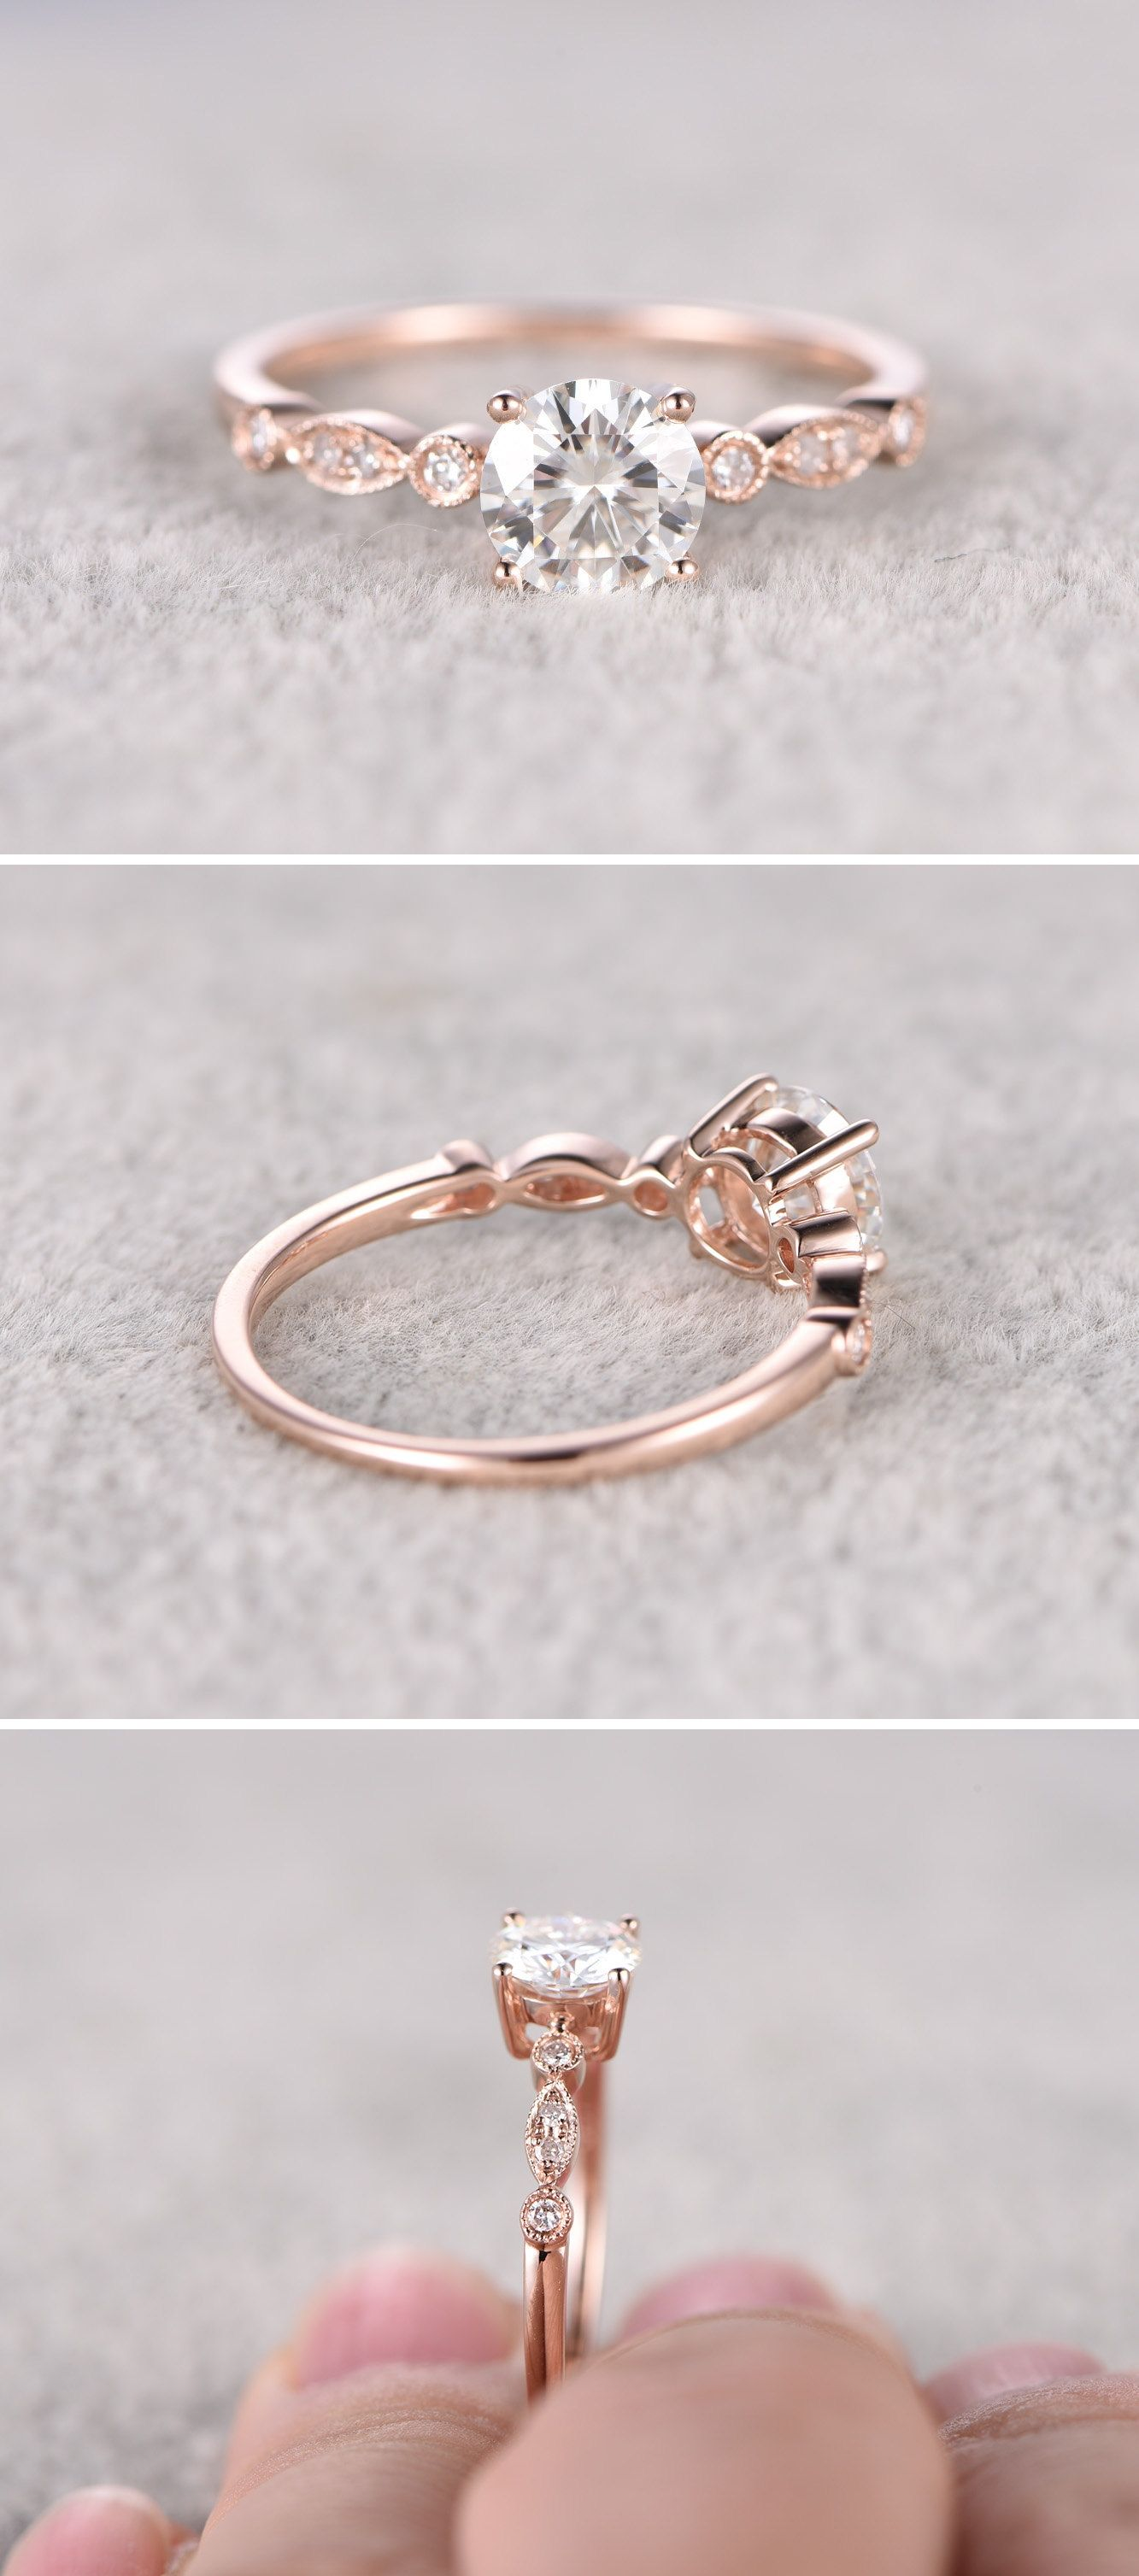 Moissanite in Rose Gold Engagement Ring Ονειρικός Γάμος 7346ebad416